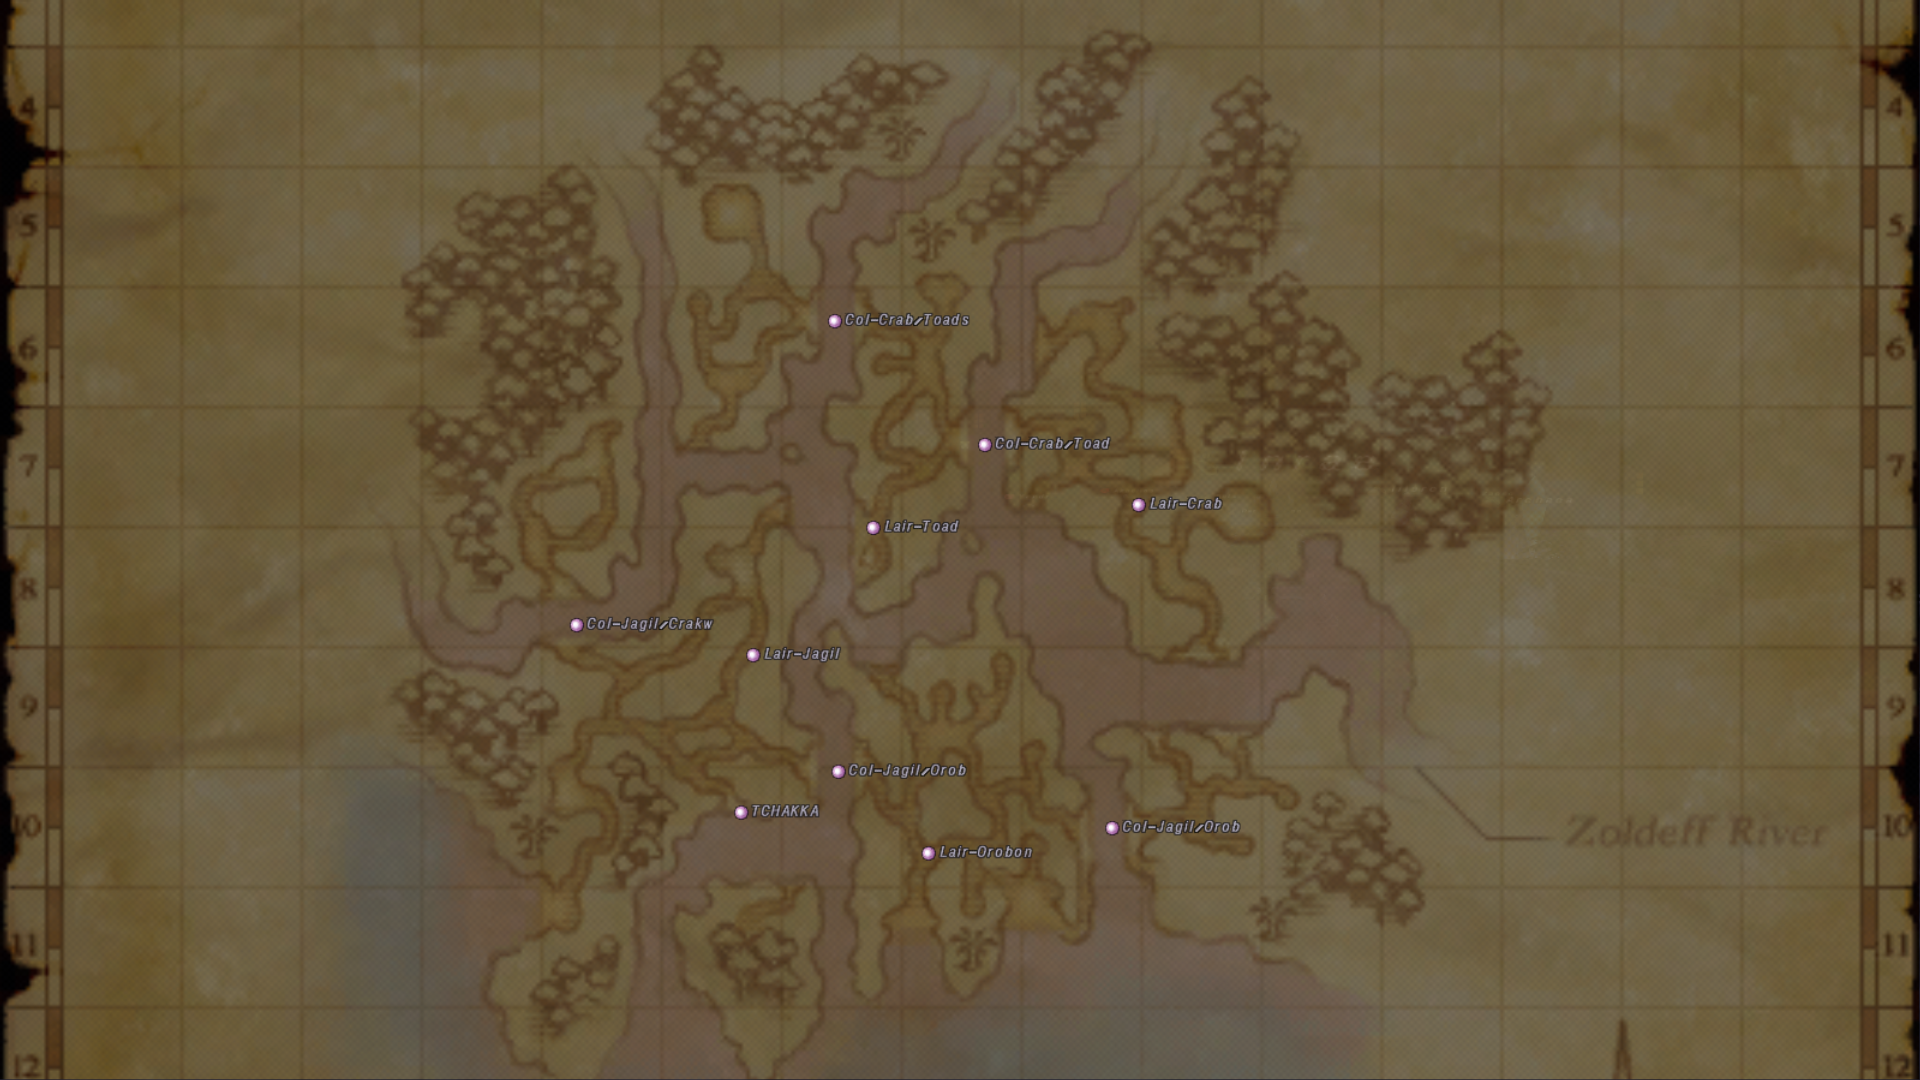 rocl ffxi remember gh-67 believe bottom below area south half upper also reive bigger open areas mining back hopefully routes used going reives down gelid lair from might easy ones gates were tell where exactly yeah thread hypocritical missing cant tried speaking relatively colonization look iirc thru small pretty long time kamihr